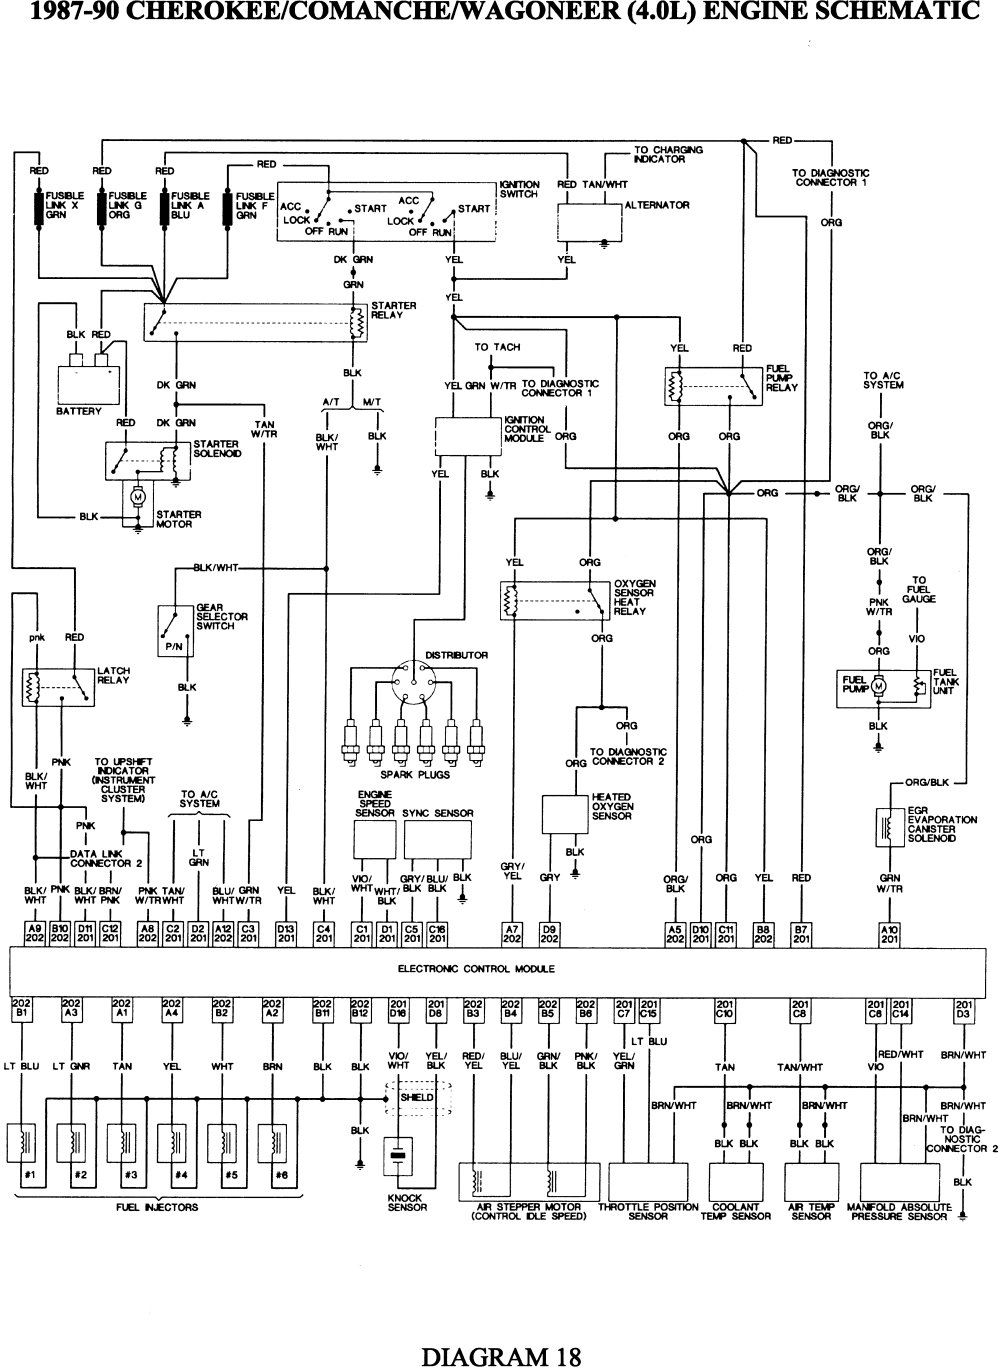 small resolution of 2001 jeep cherokee engine wiring diagram wiring diagram name wiring diagram for jeep cherokee wiring diagram for jeep cherokee